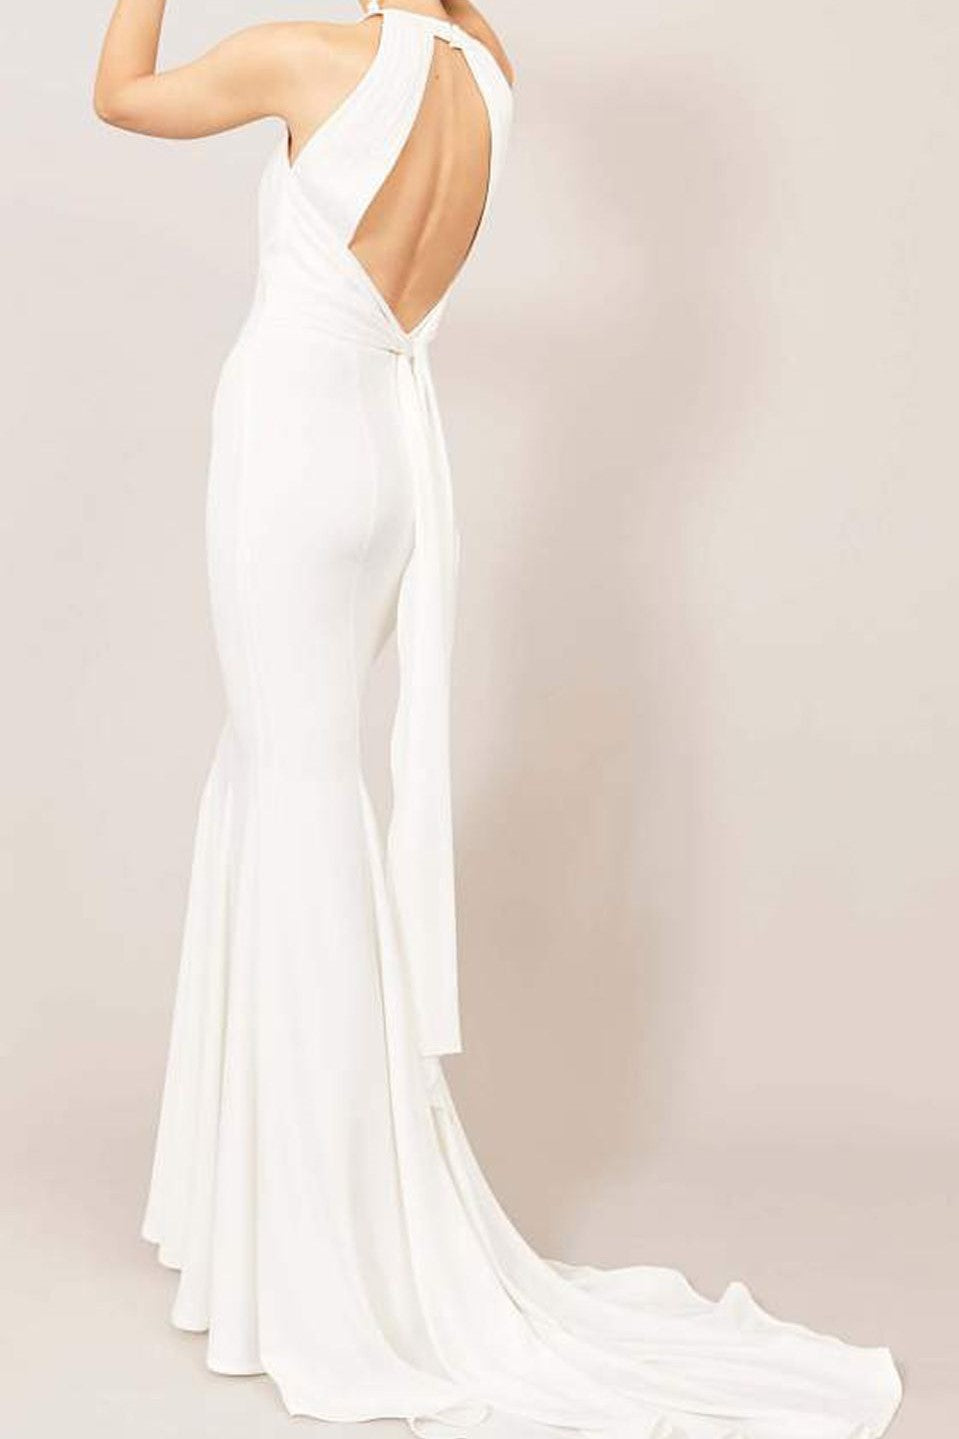 Vintage Jewel Neck Sleeveless Open Back Long Solid Mermaid Wedding Dress